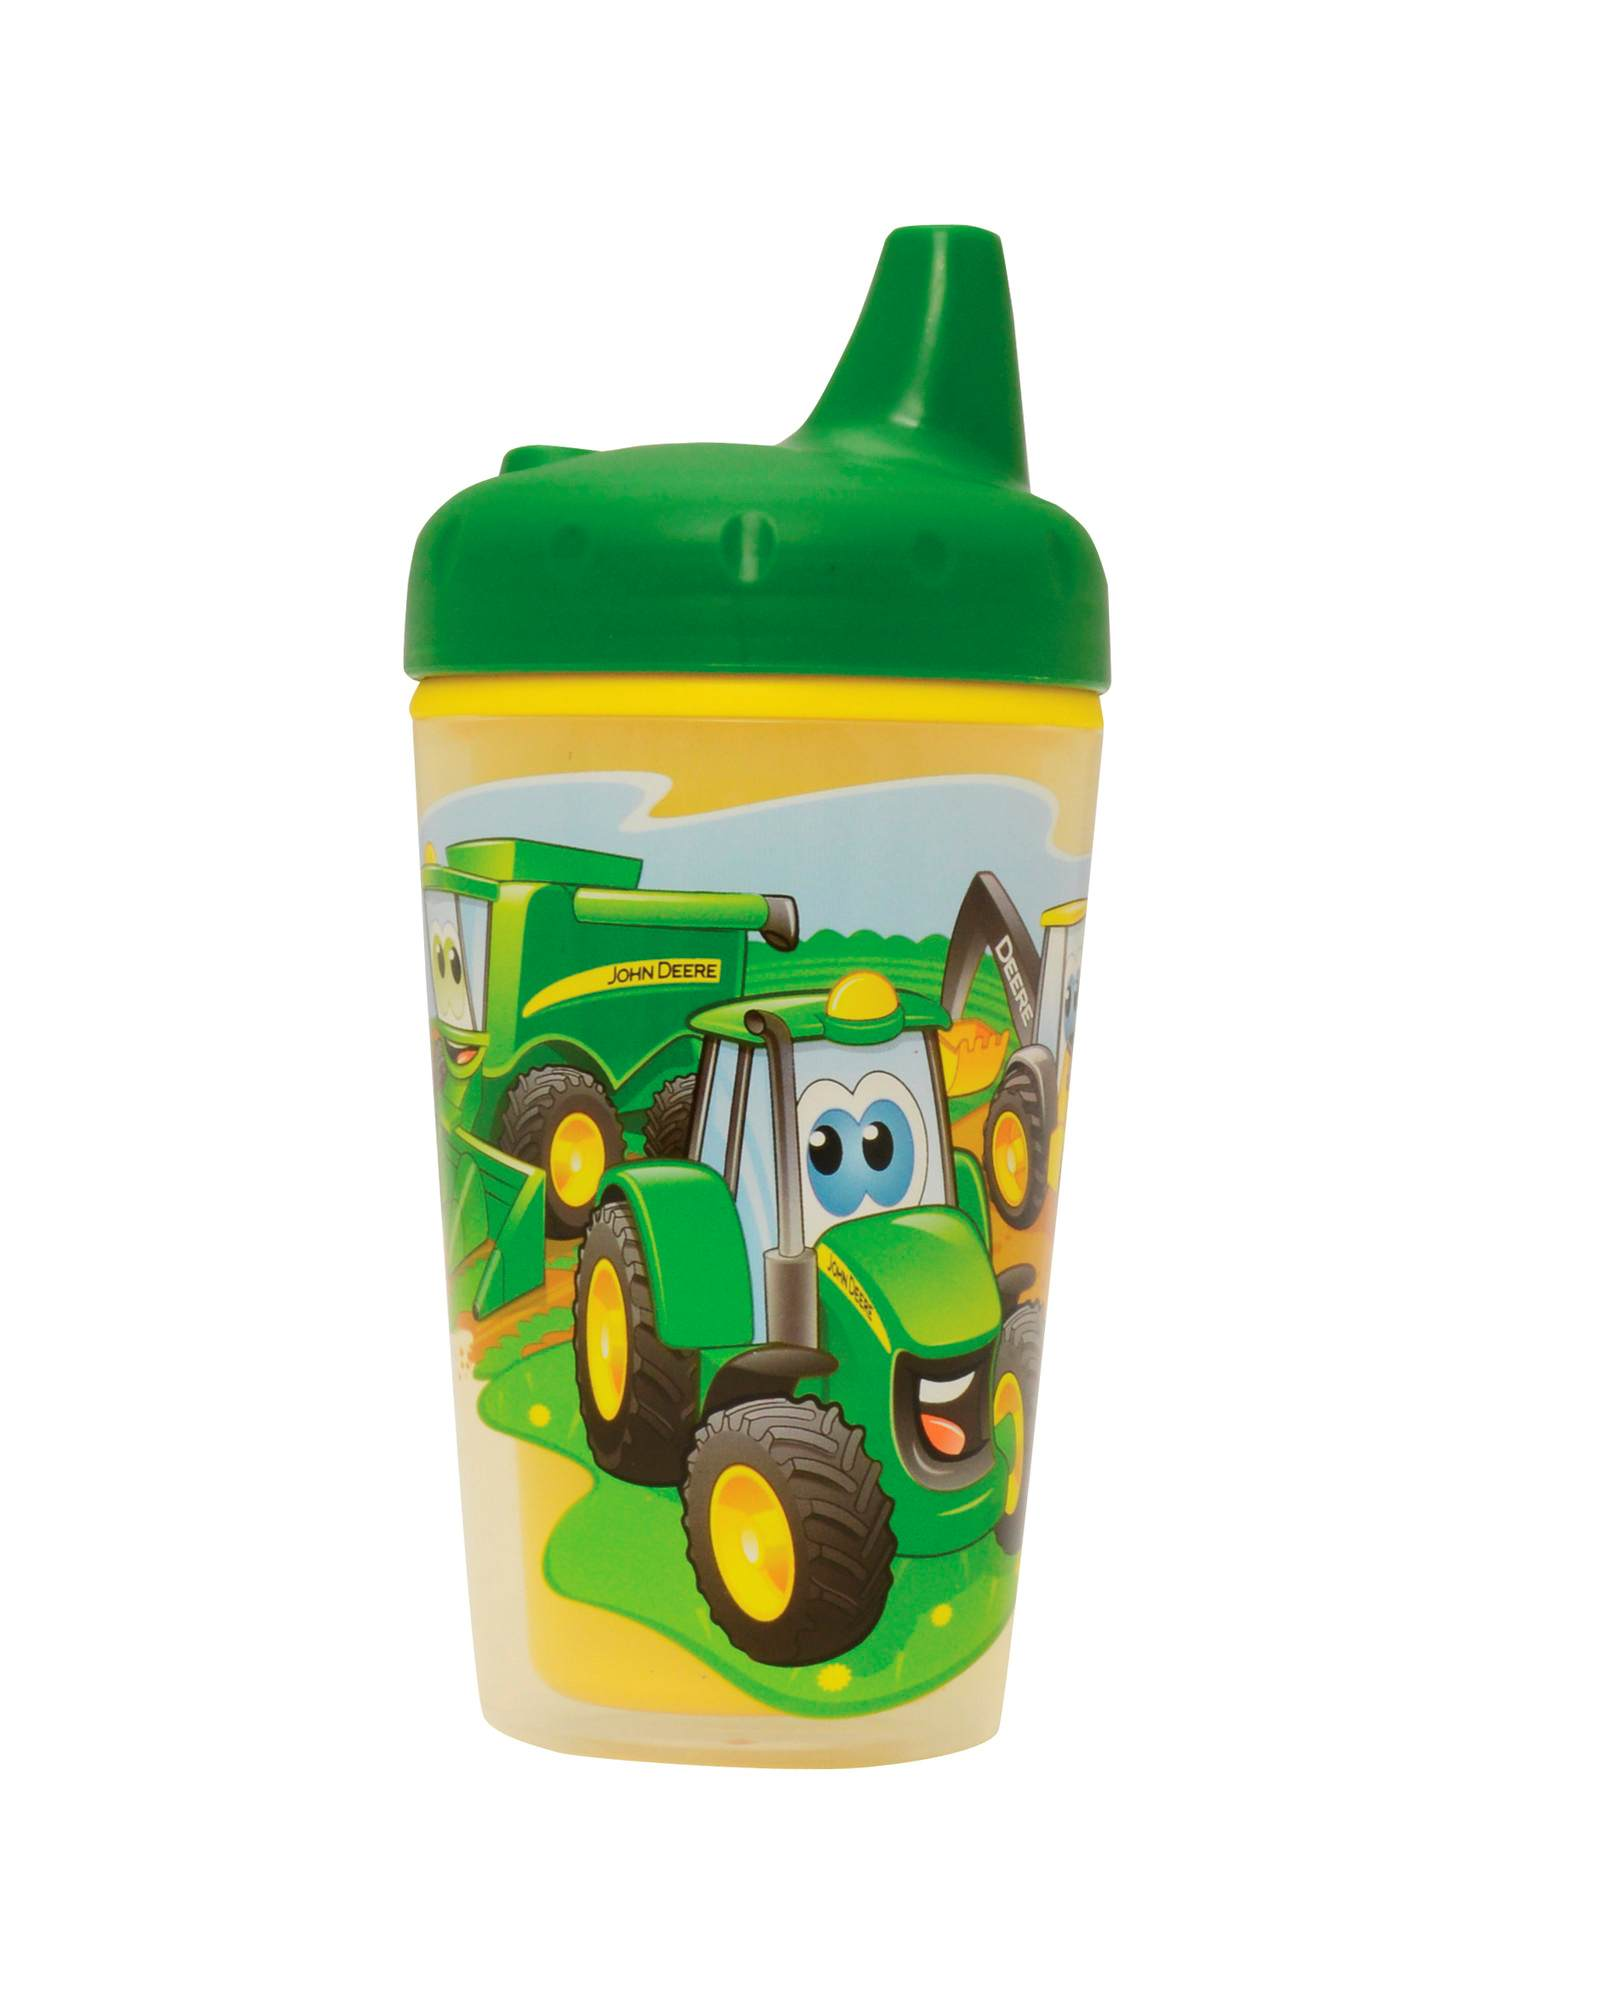 Tomy John Deere Insulated Sippy Cup with One Piece Lid - 9 oz.